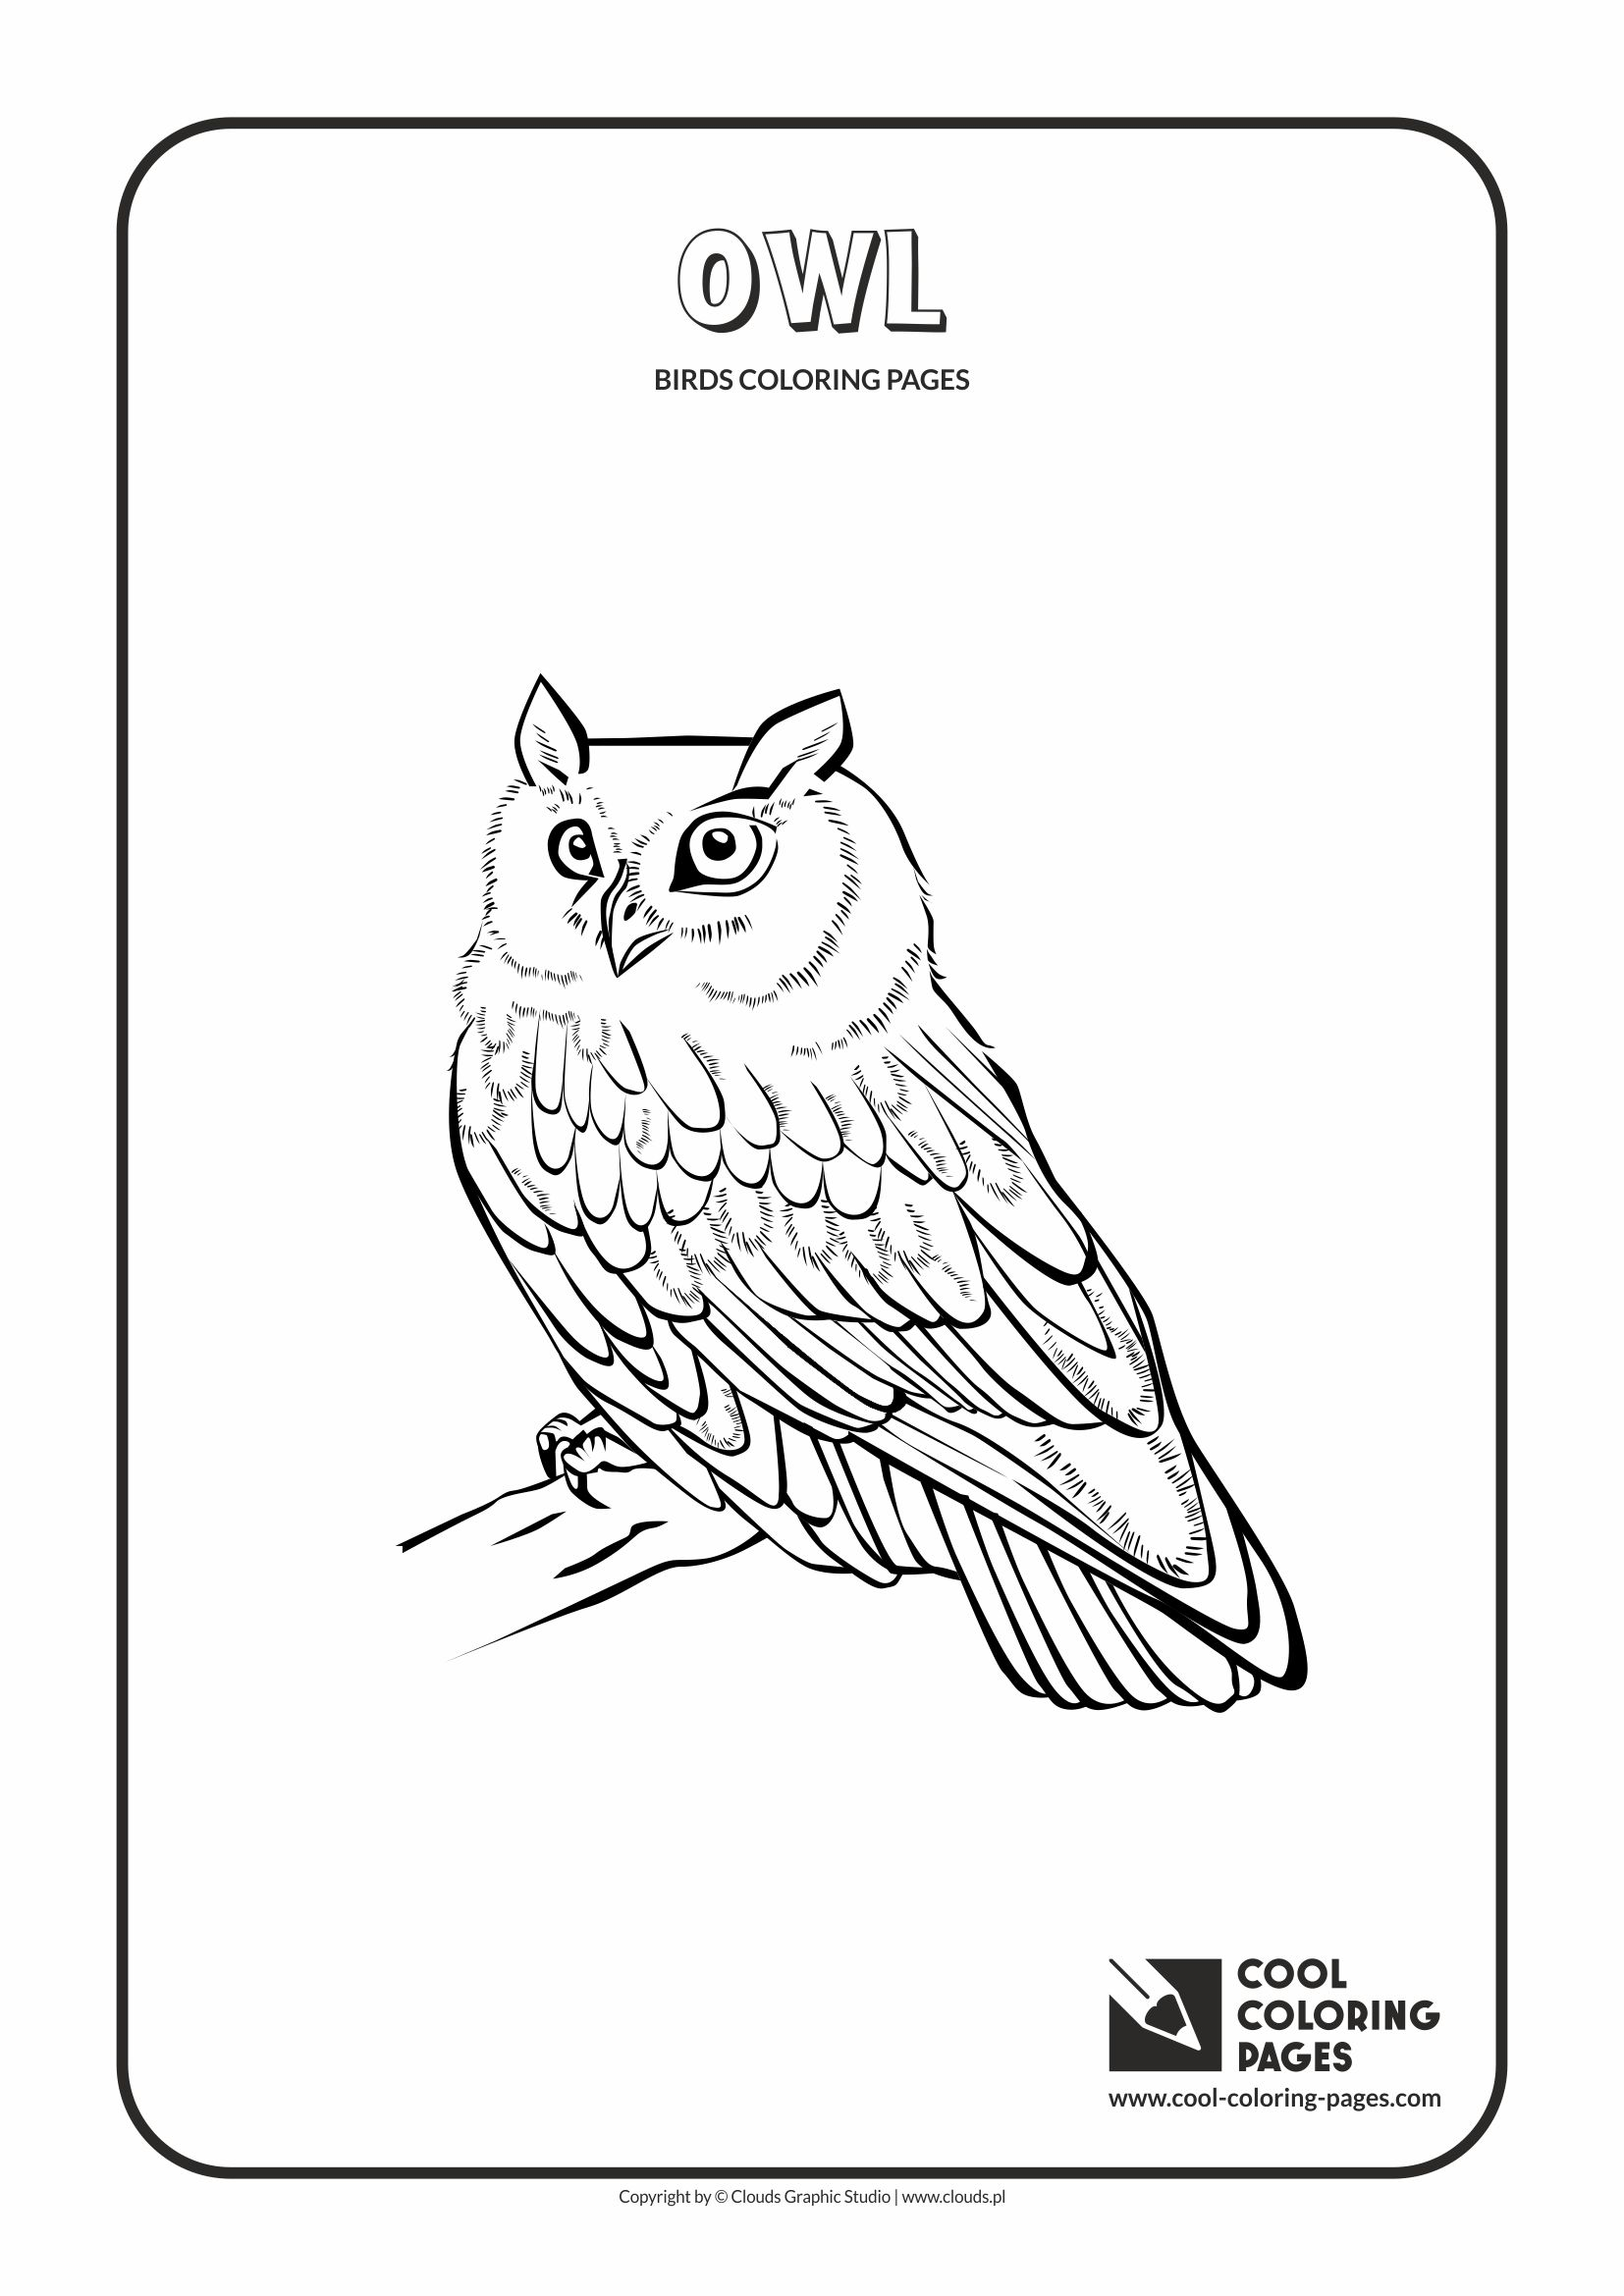 Cool Coloring Pages Owl Coloring Page